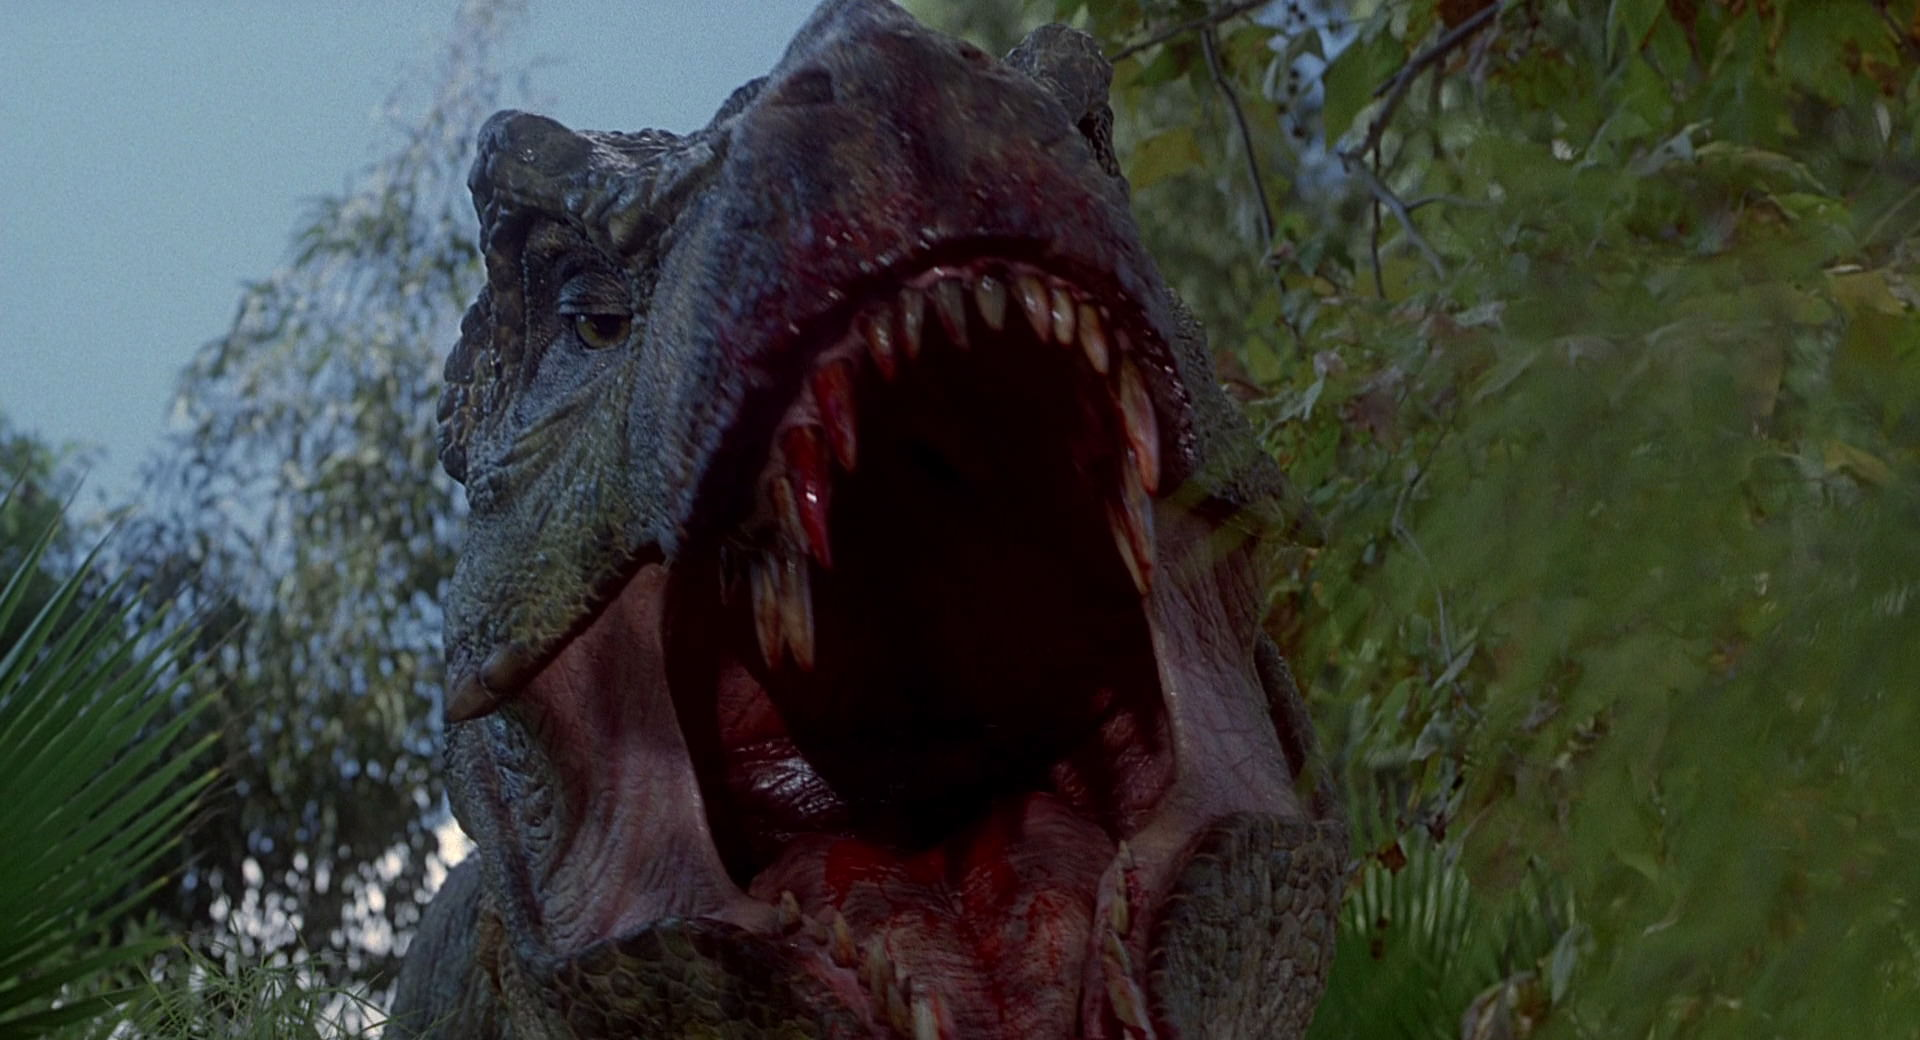 Best and worst moments of Animatronics in the JP quadrilogy?   Jurassic-park3-movie-screencaps.com-3120